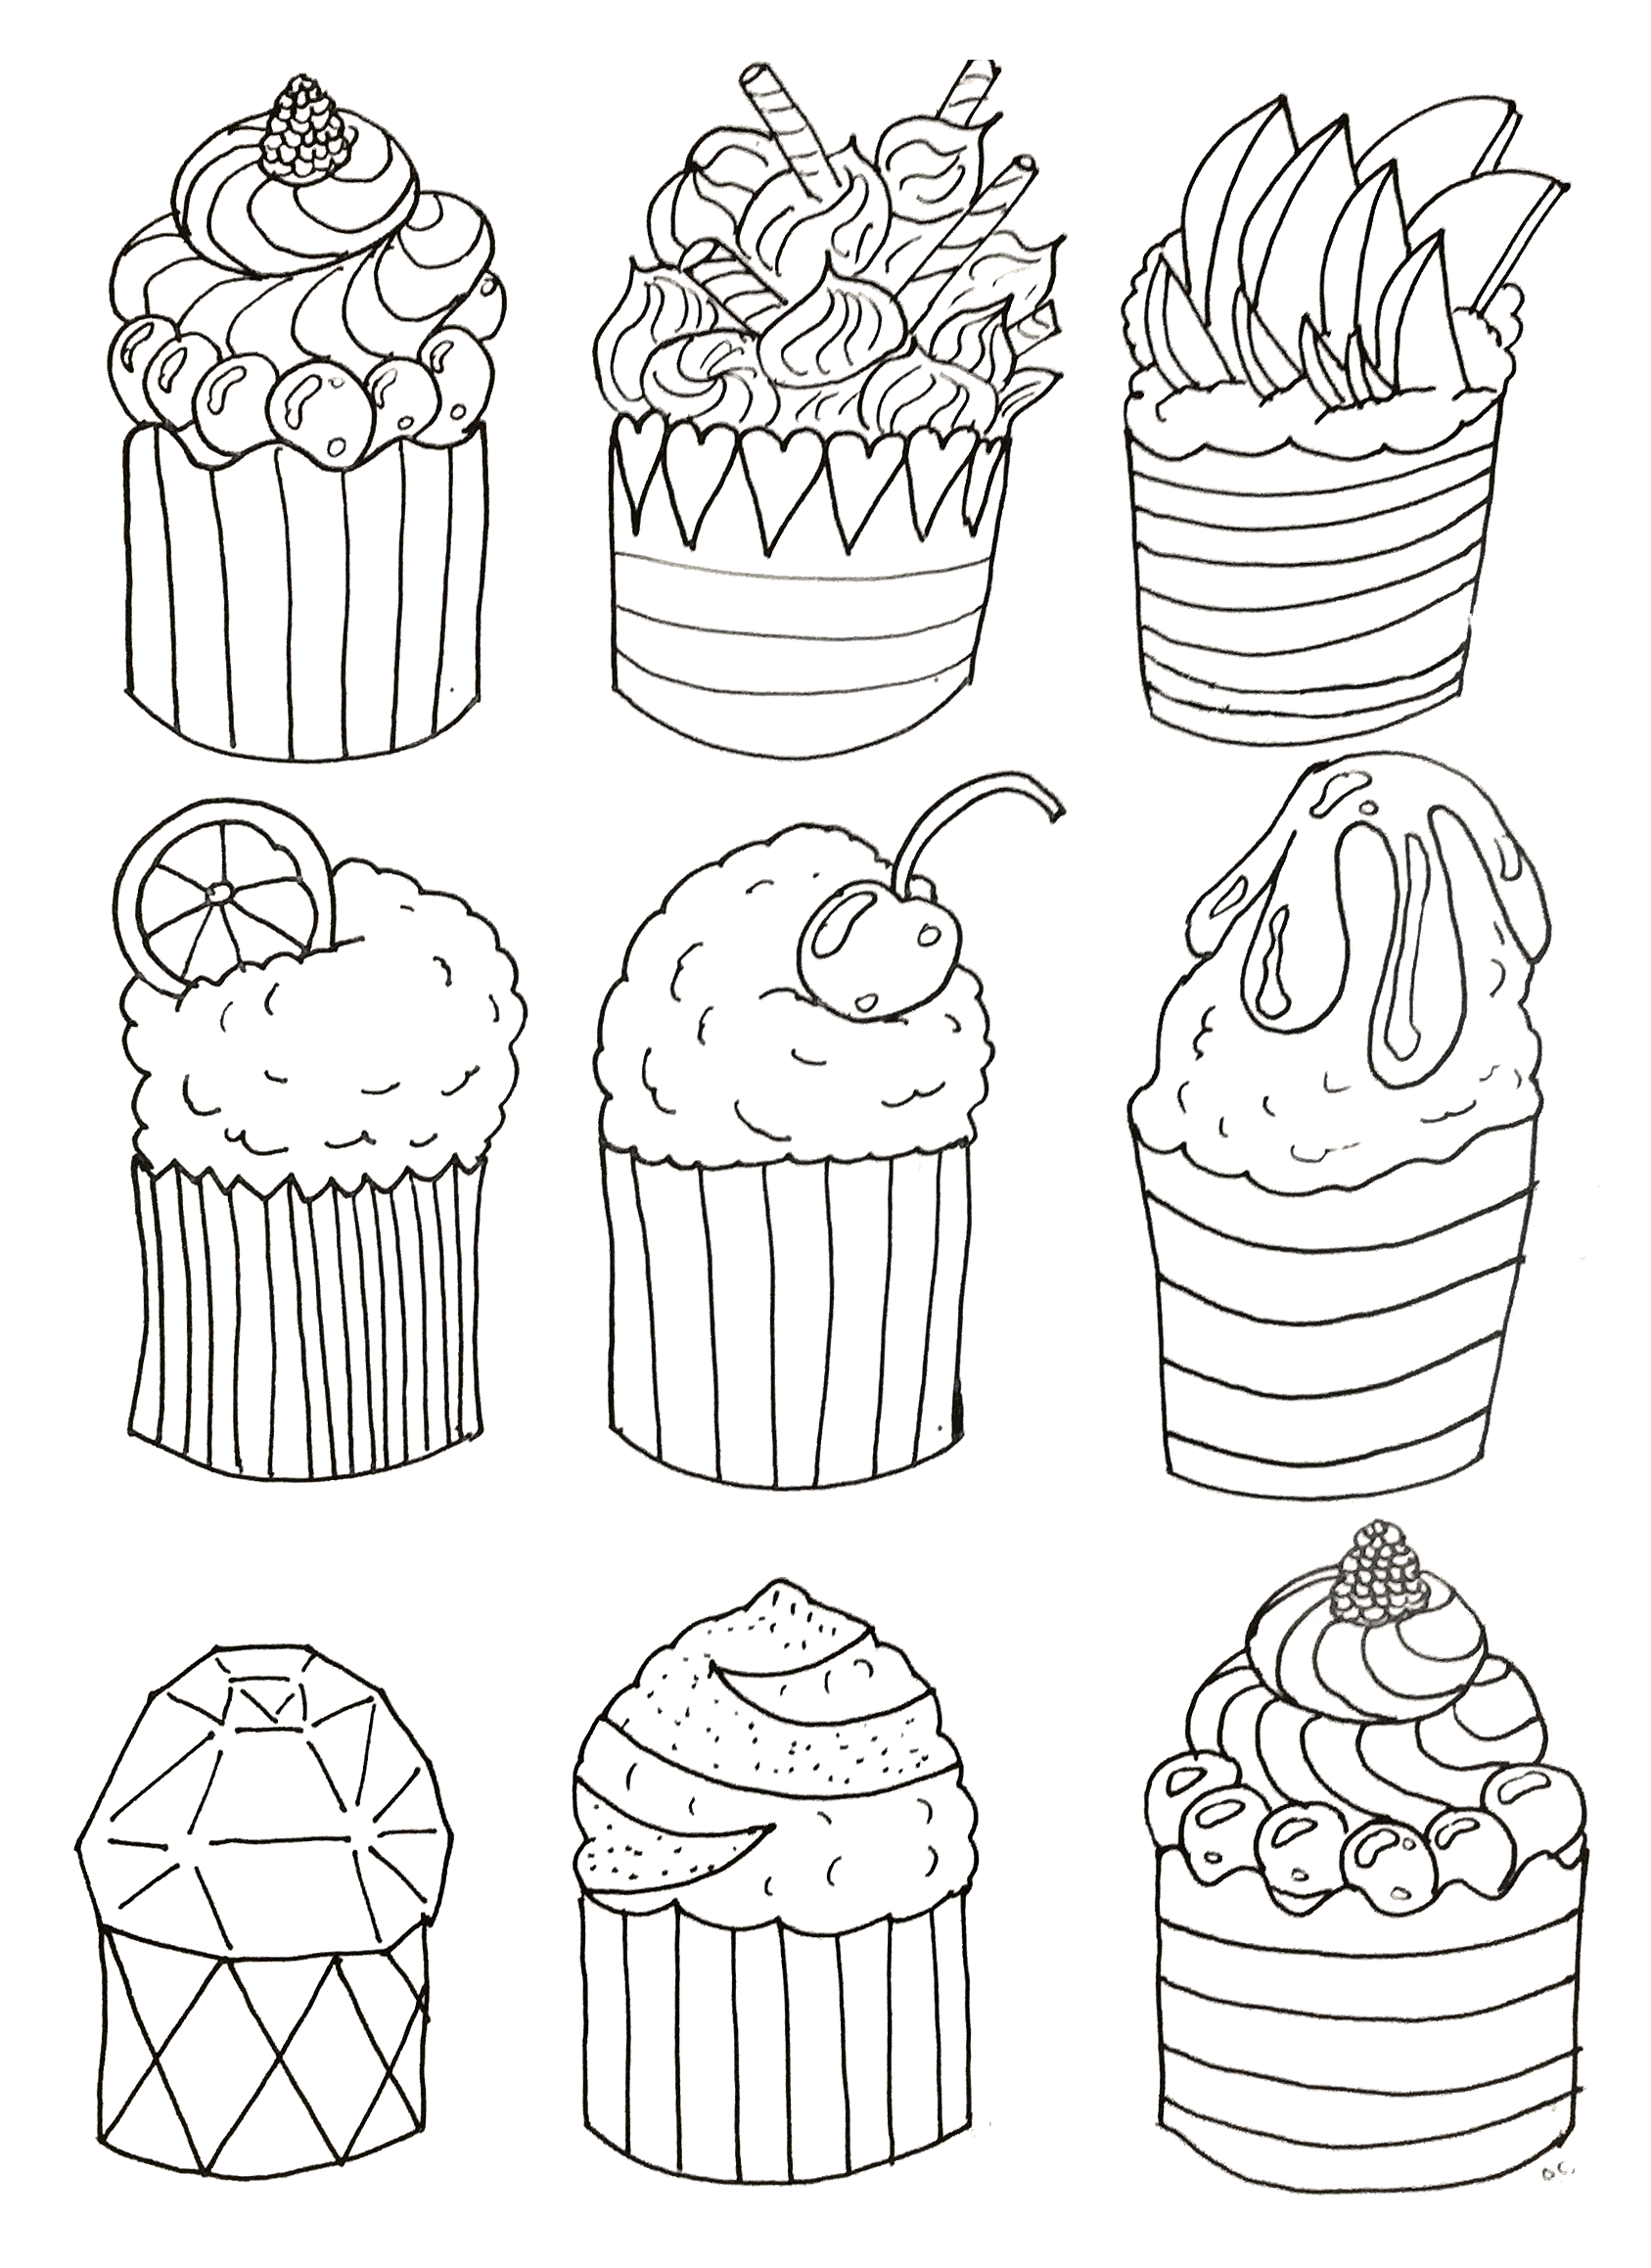 Simple cupcakes coloring page original drawing to print and color by olivier to download for free on www coloring pages adults com